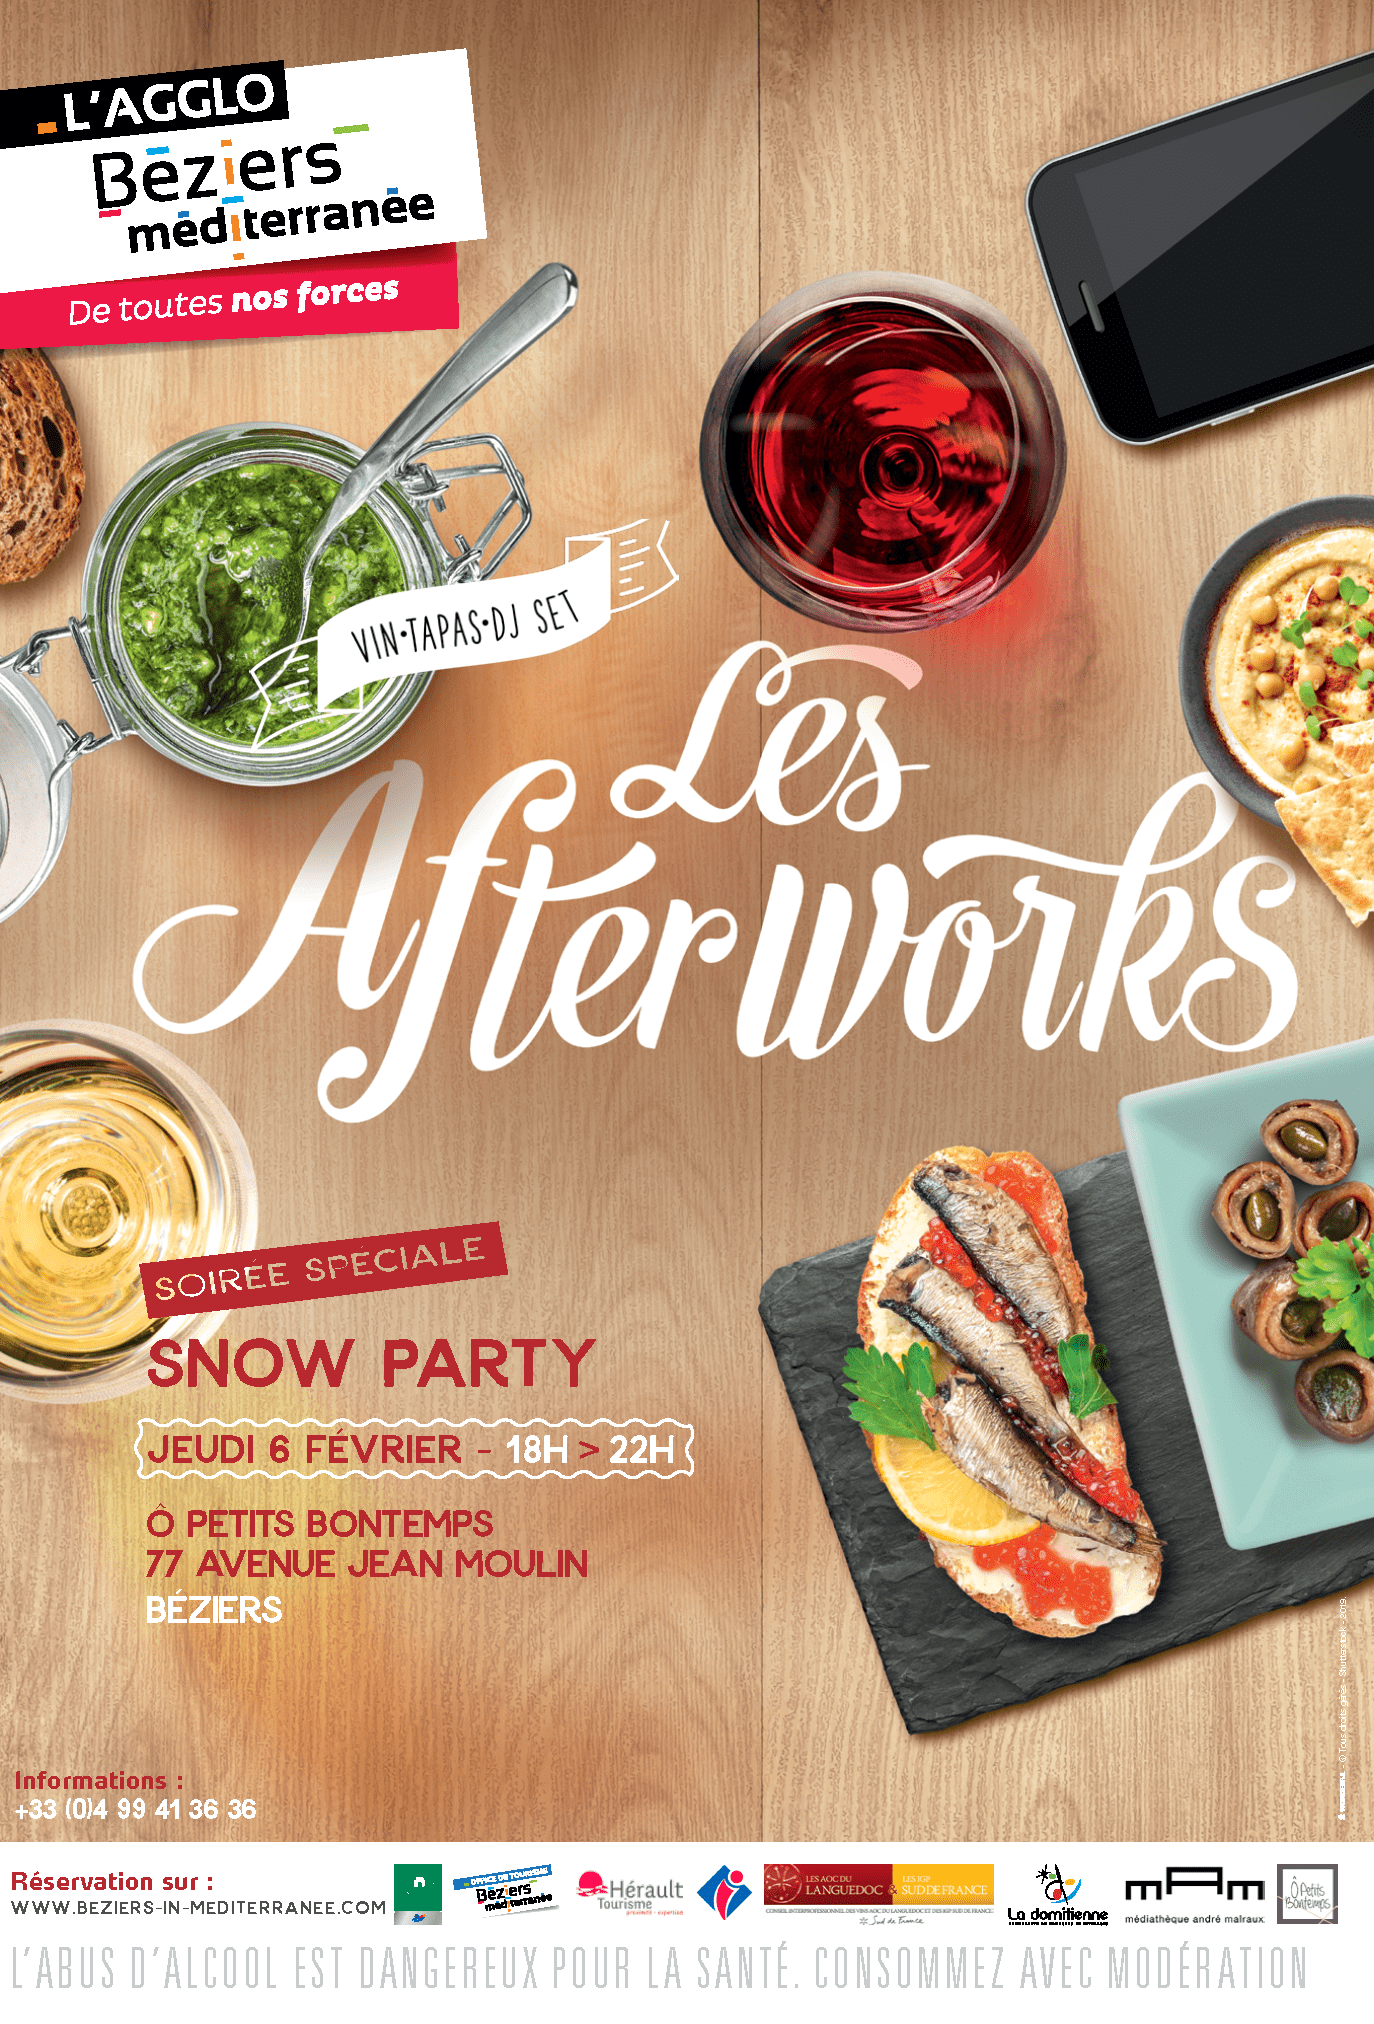 afterwork 6.02.20 agglo beziers